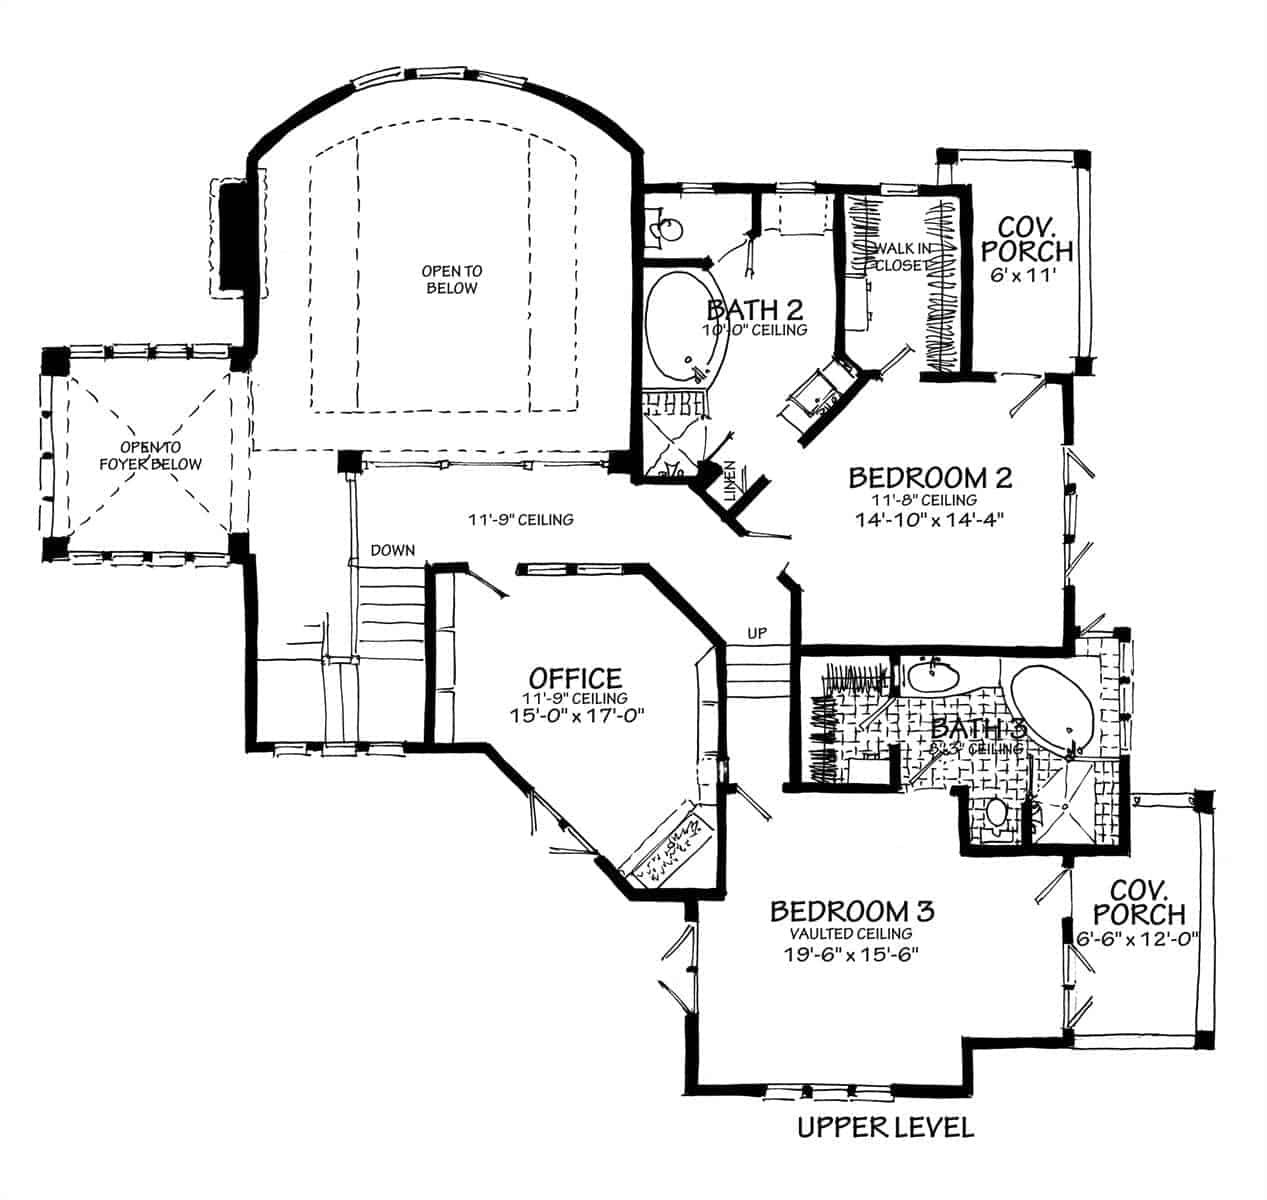 Second level floor plan with office and two more bedrooms, both with private balcony.